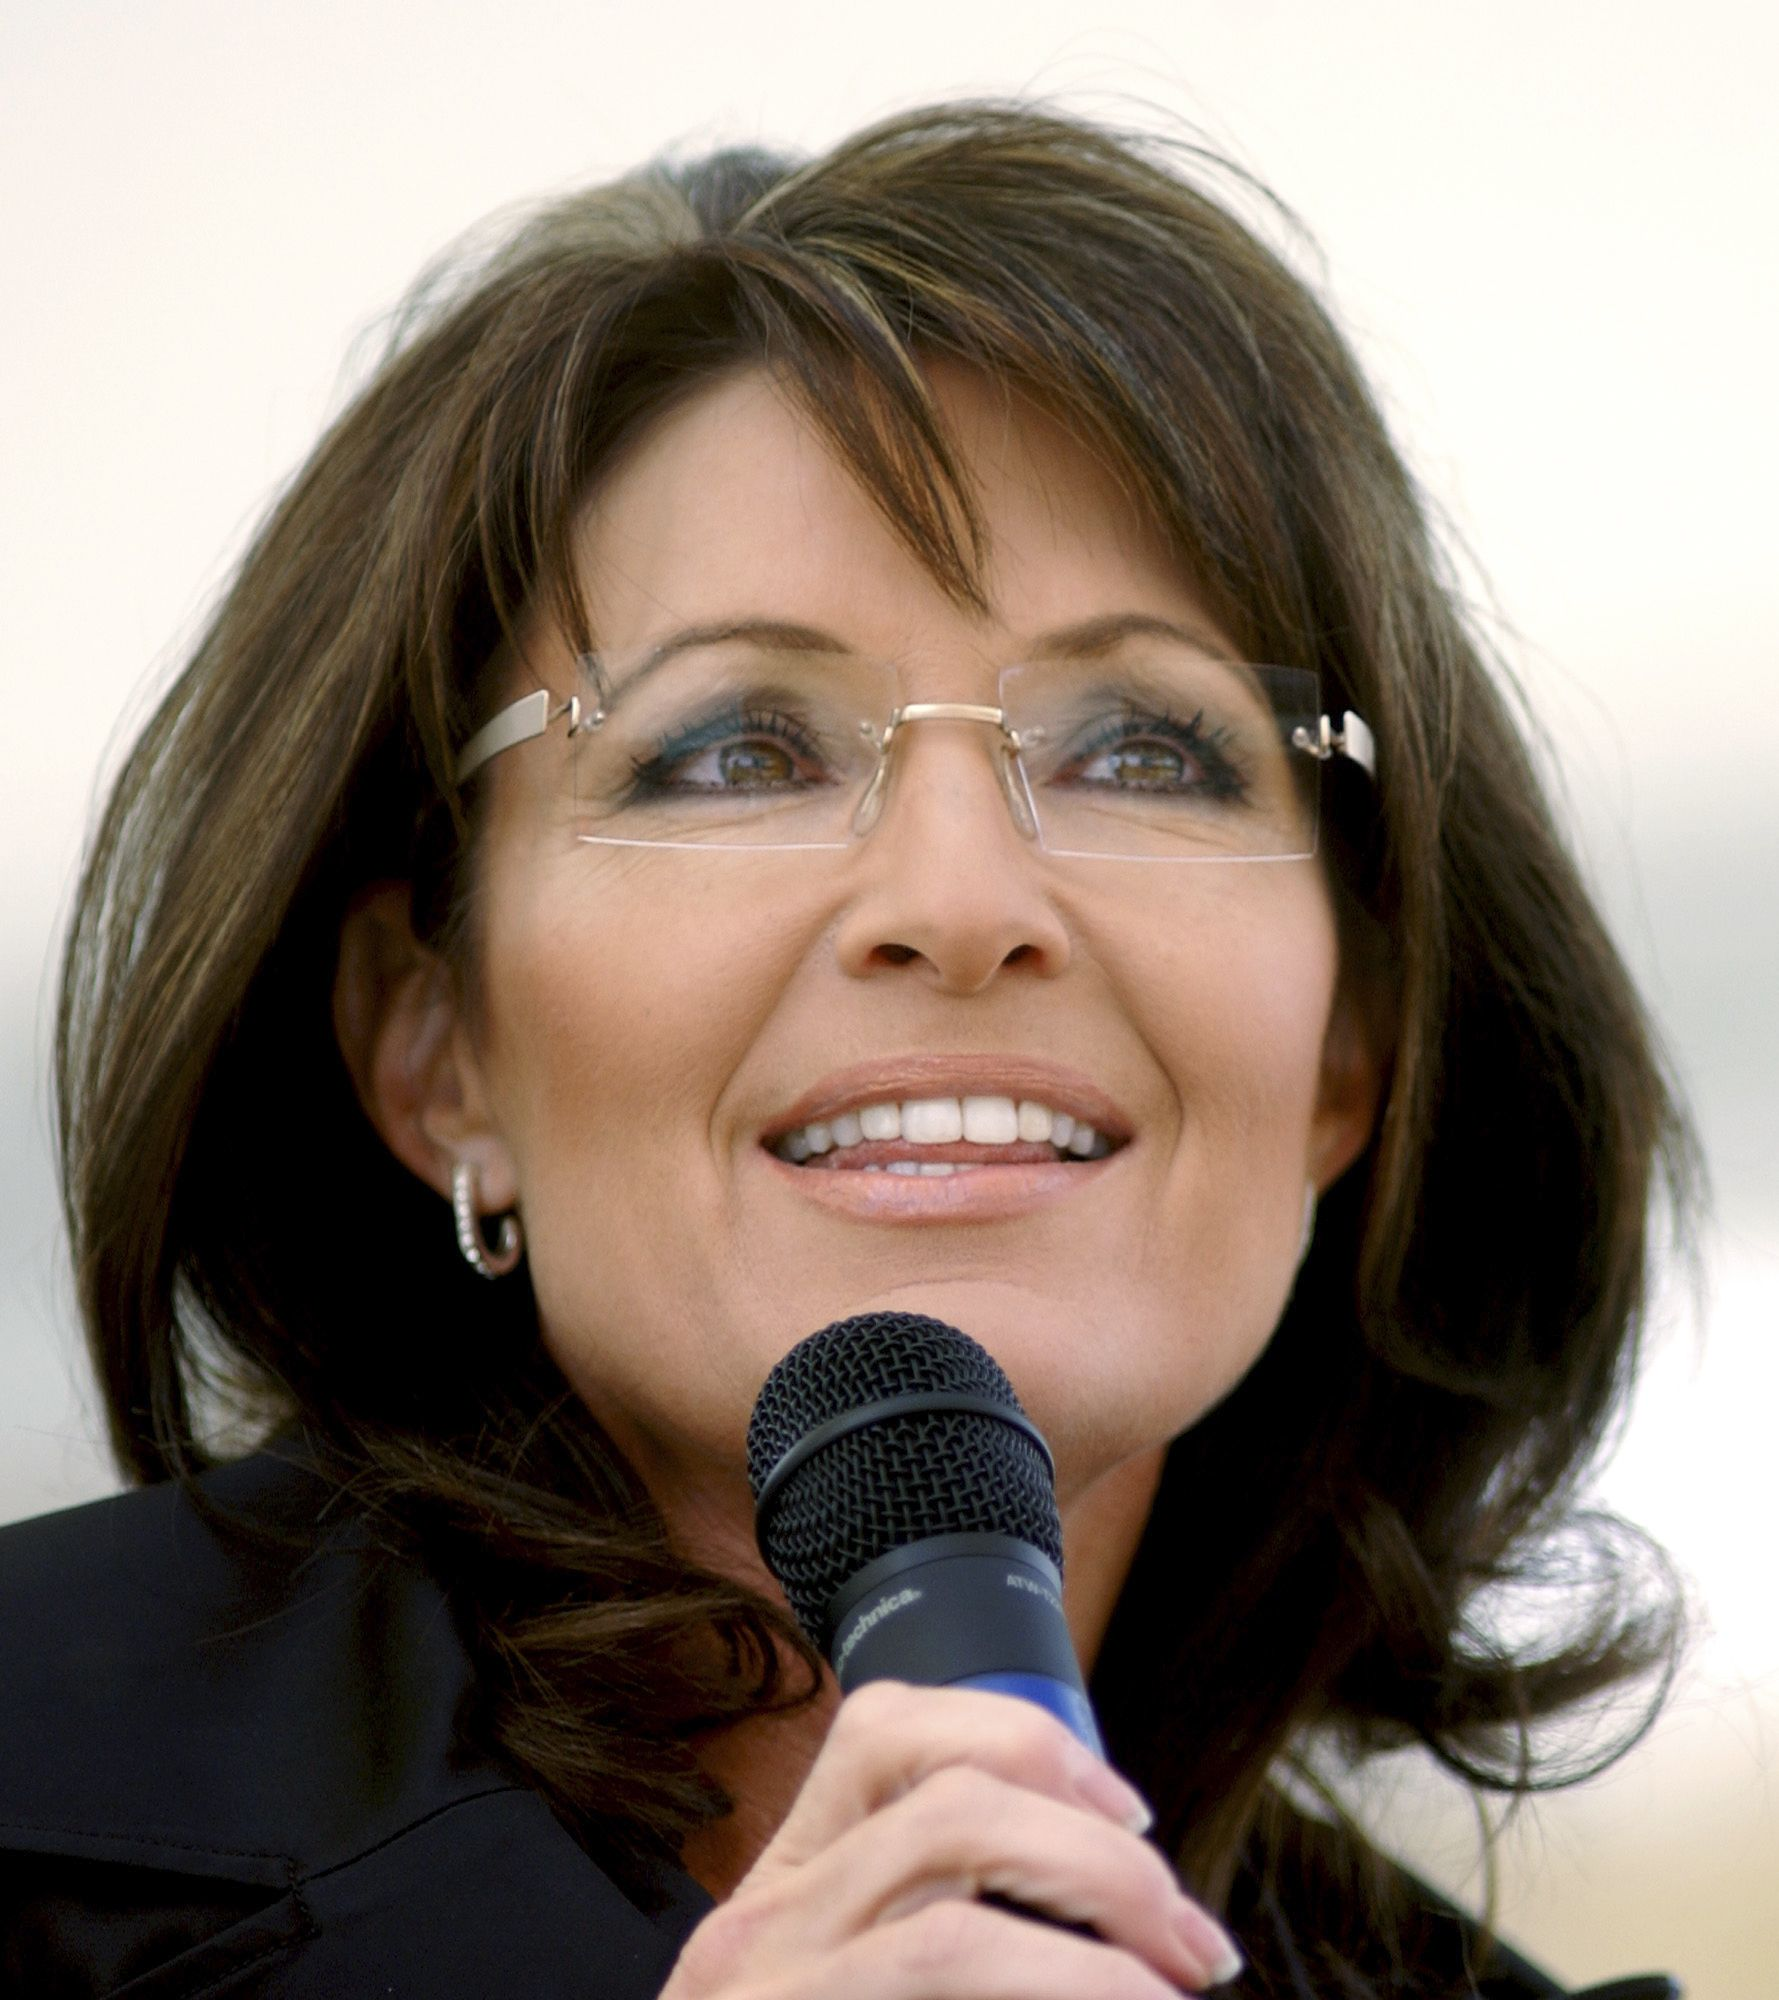 c4f00e67b8 Sarah Palin made women wearing glasses popular practically overnight.  Thanks Sarah! Love those glasses